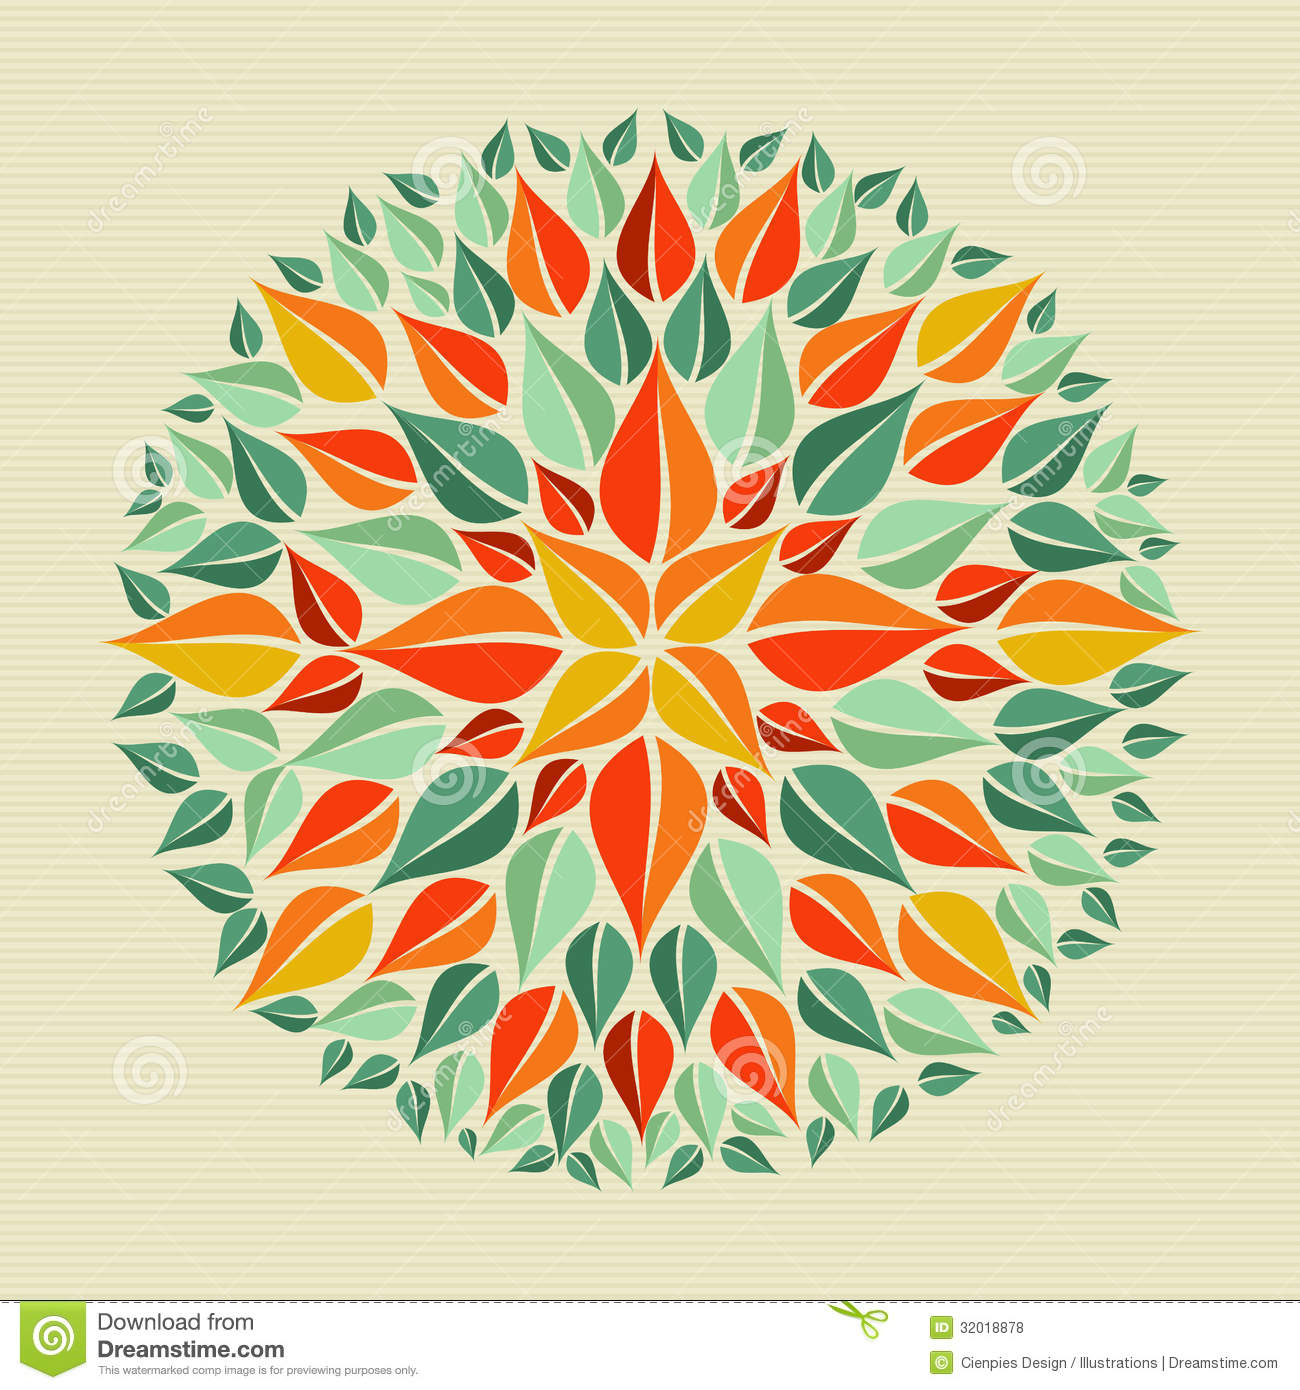 Leaves Yoga Mandala Stock Vector. Image Of Decor, Mystery